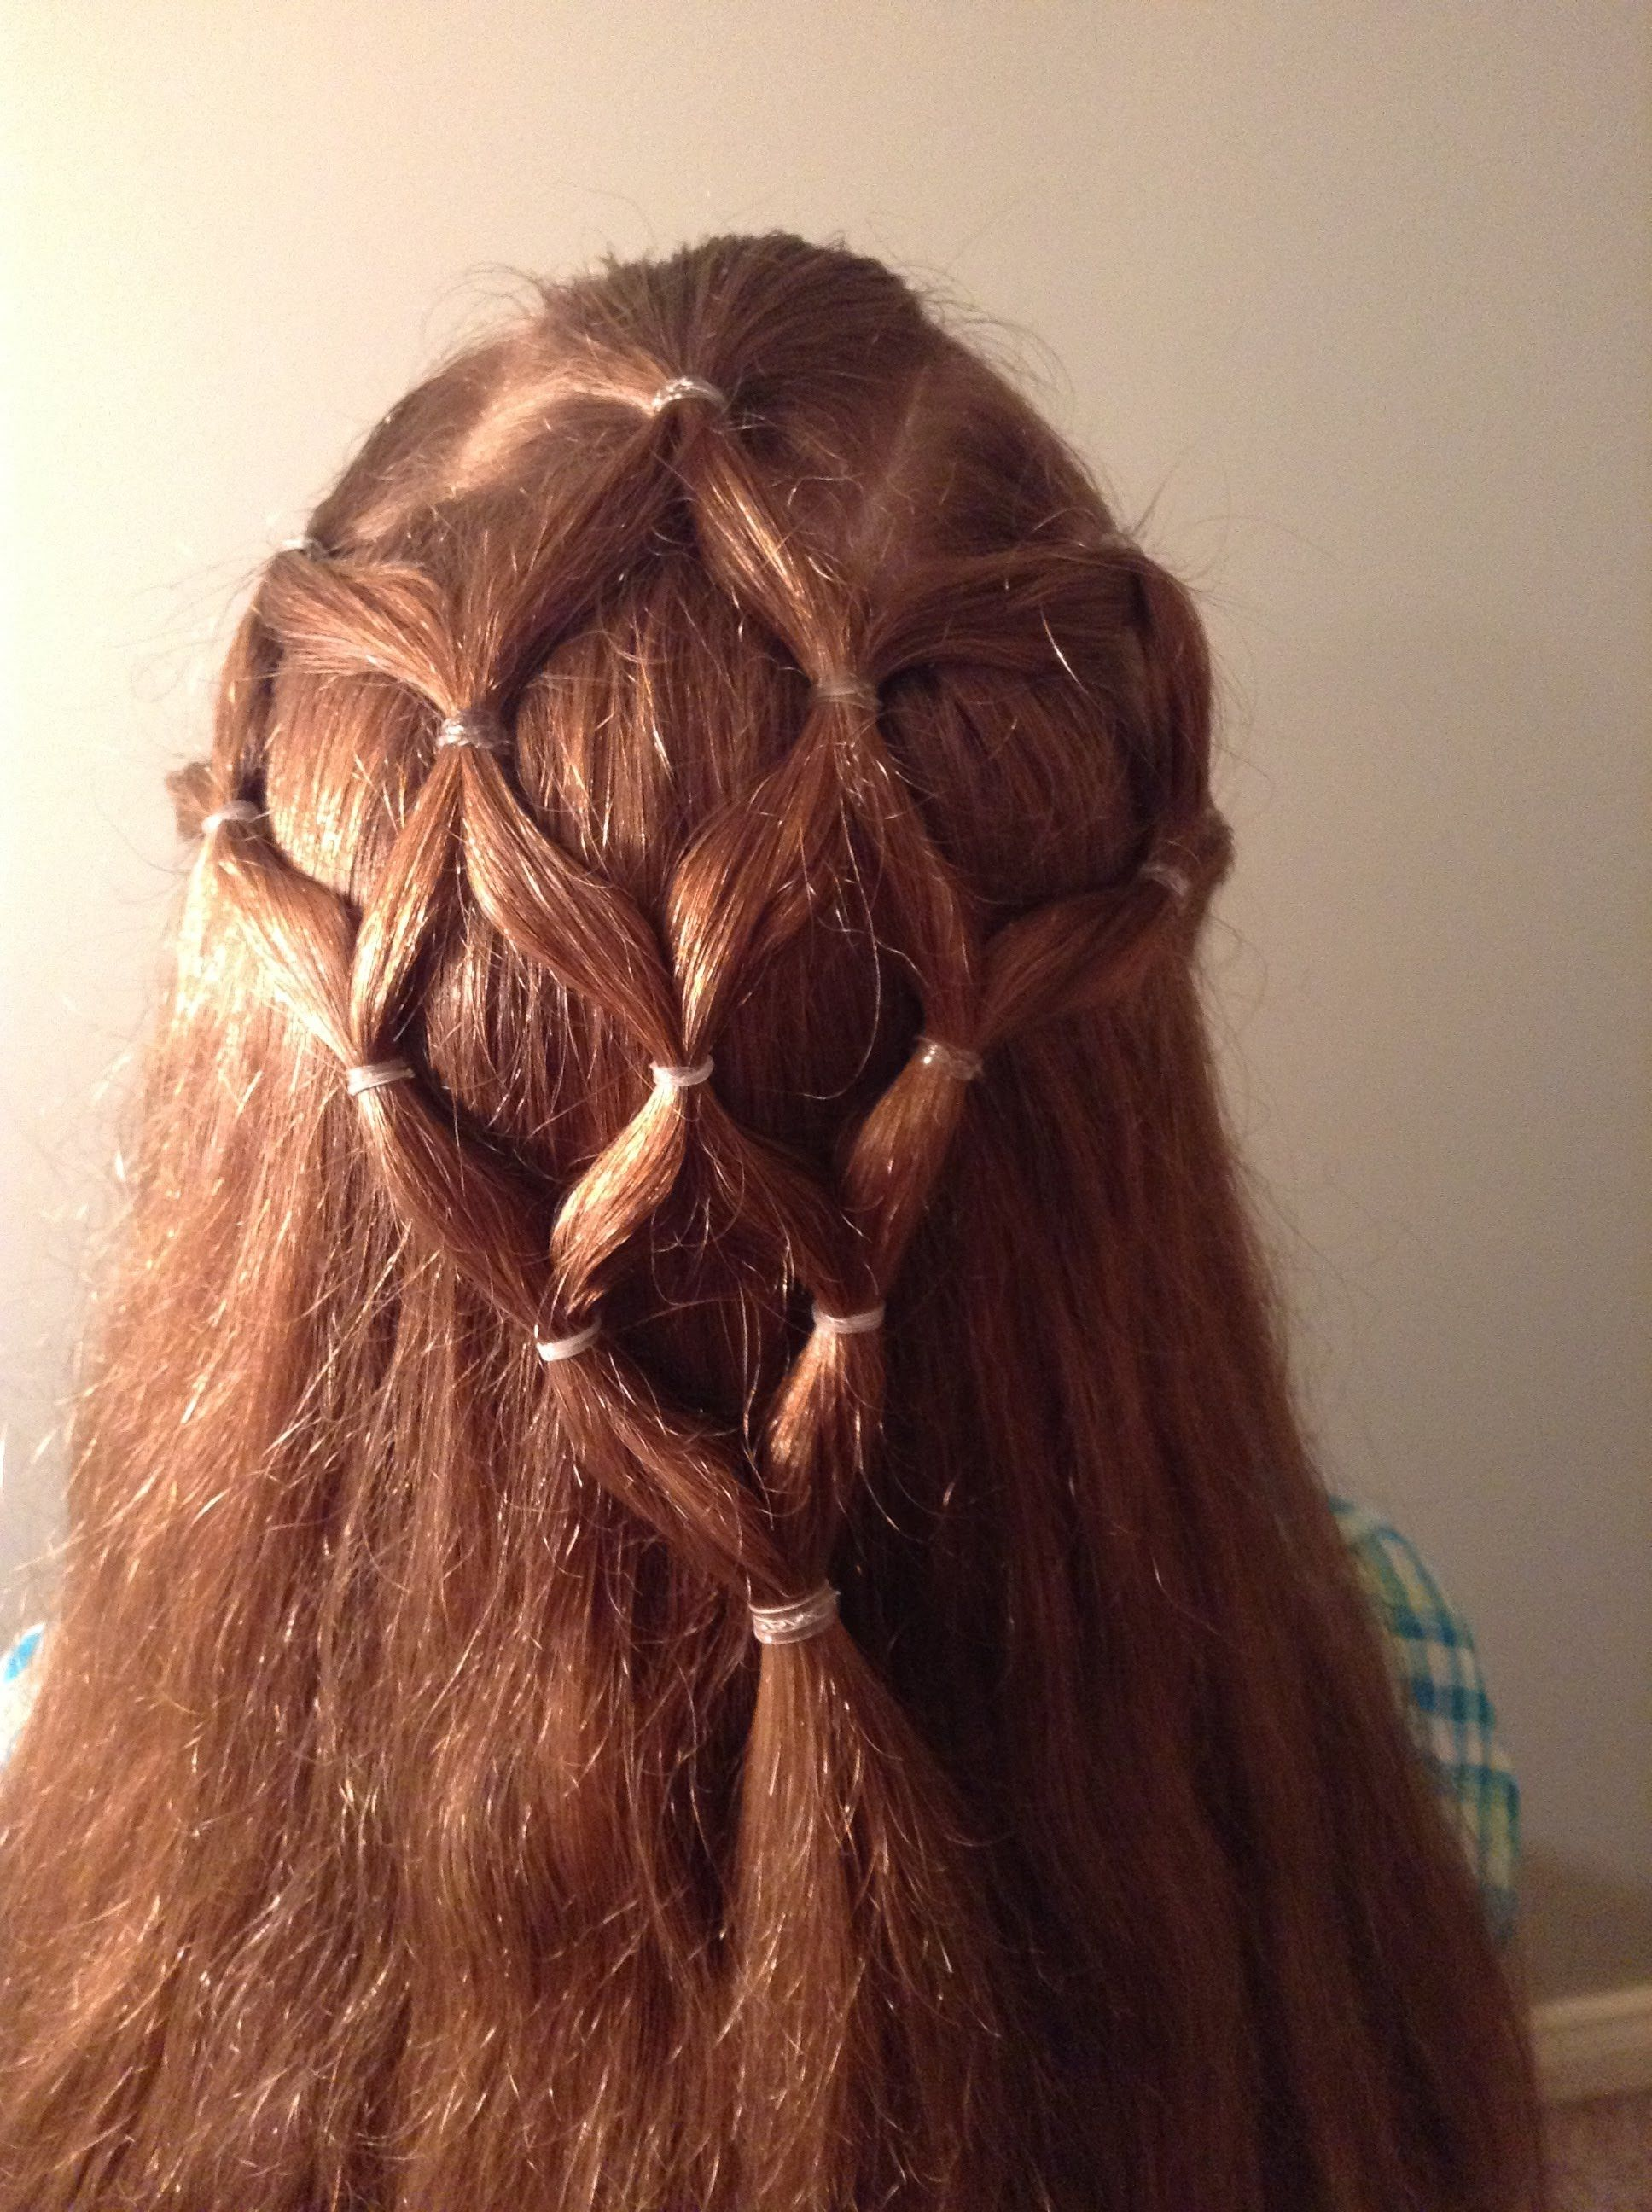 Girls Hair Style Simplified Fish Net Hair Hair Styles Hair Beauty